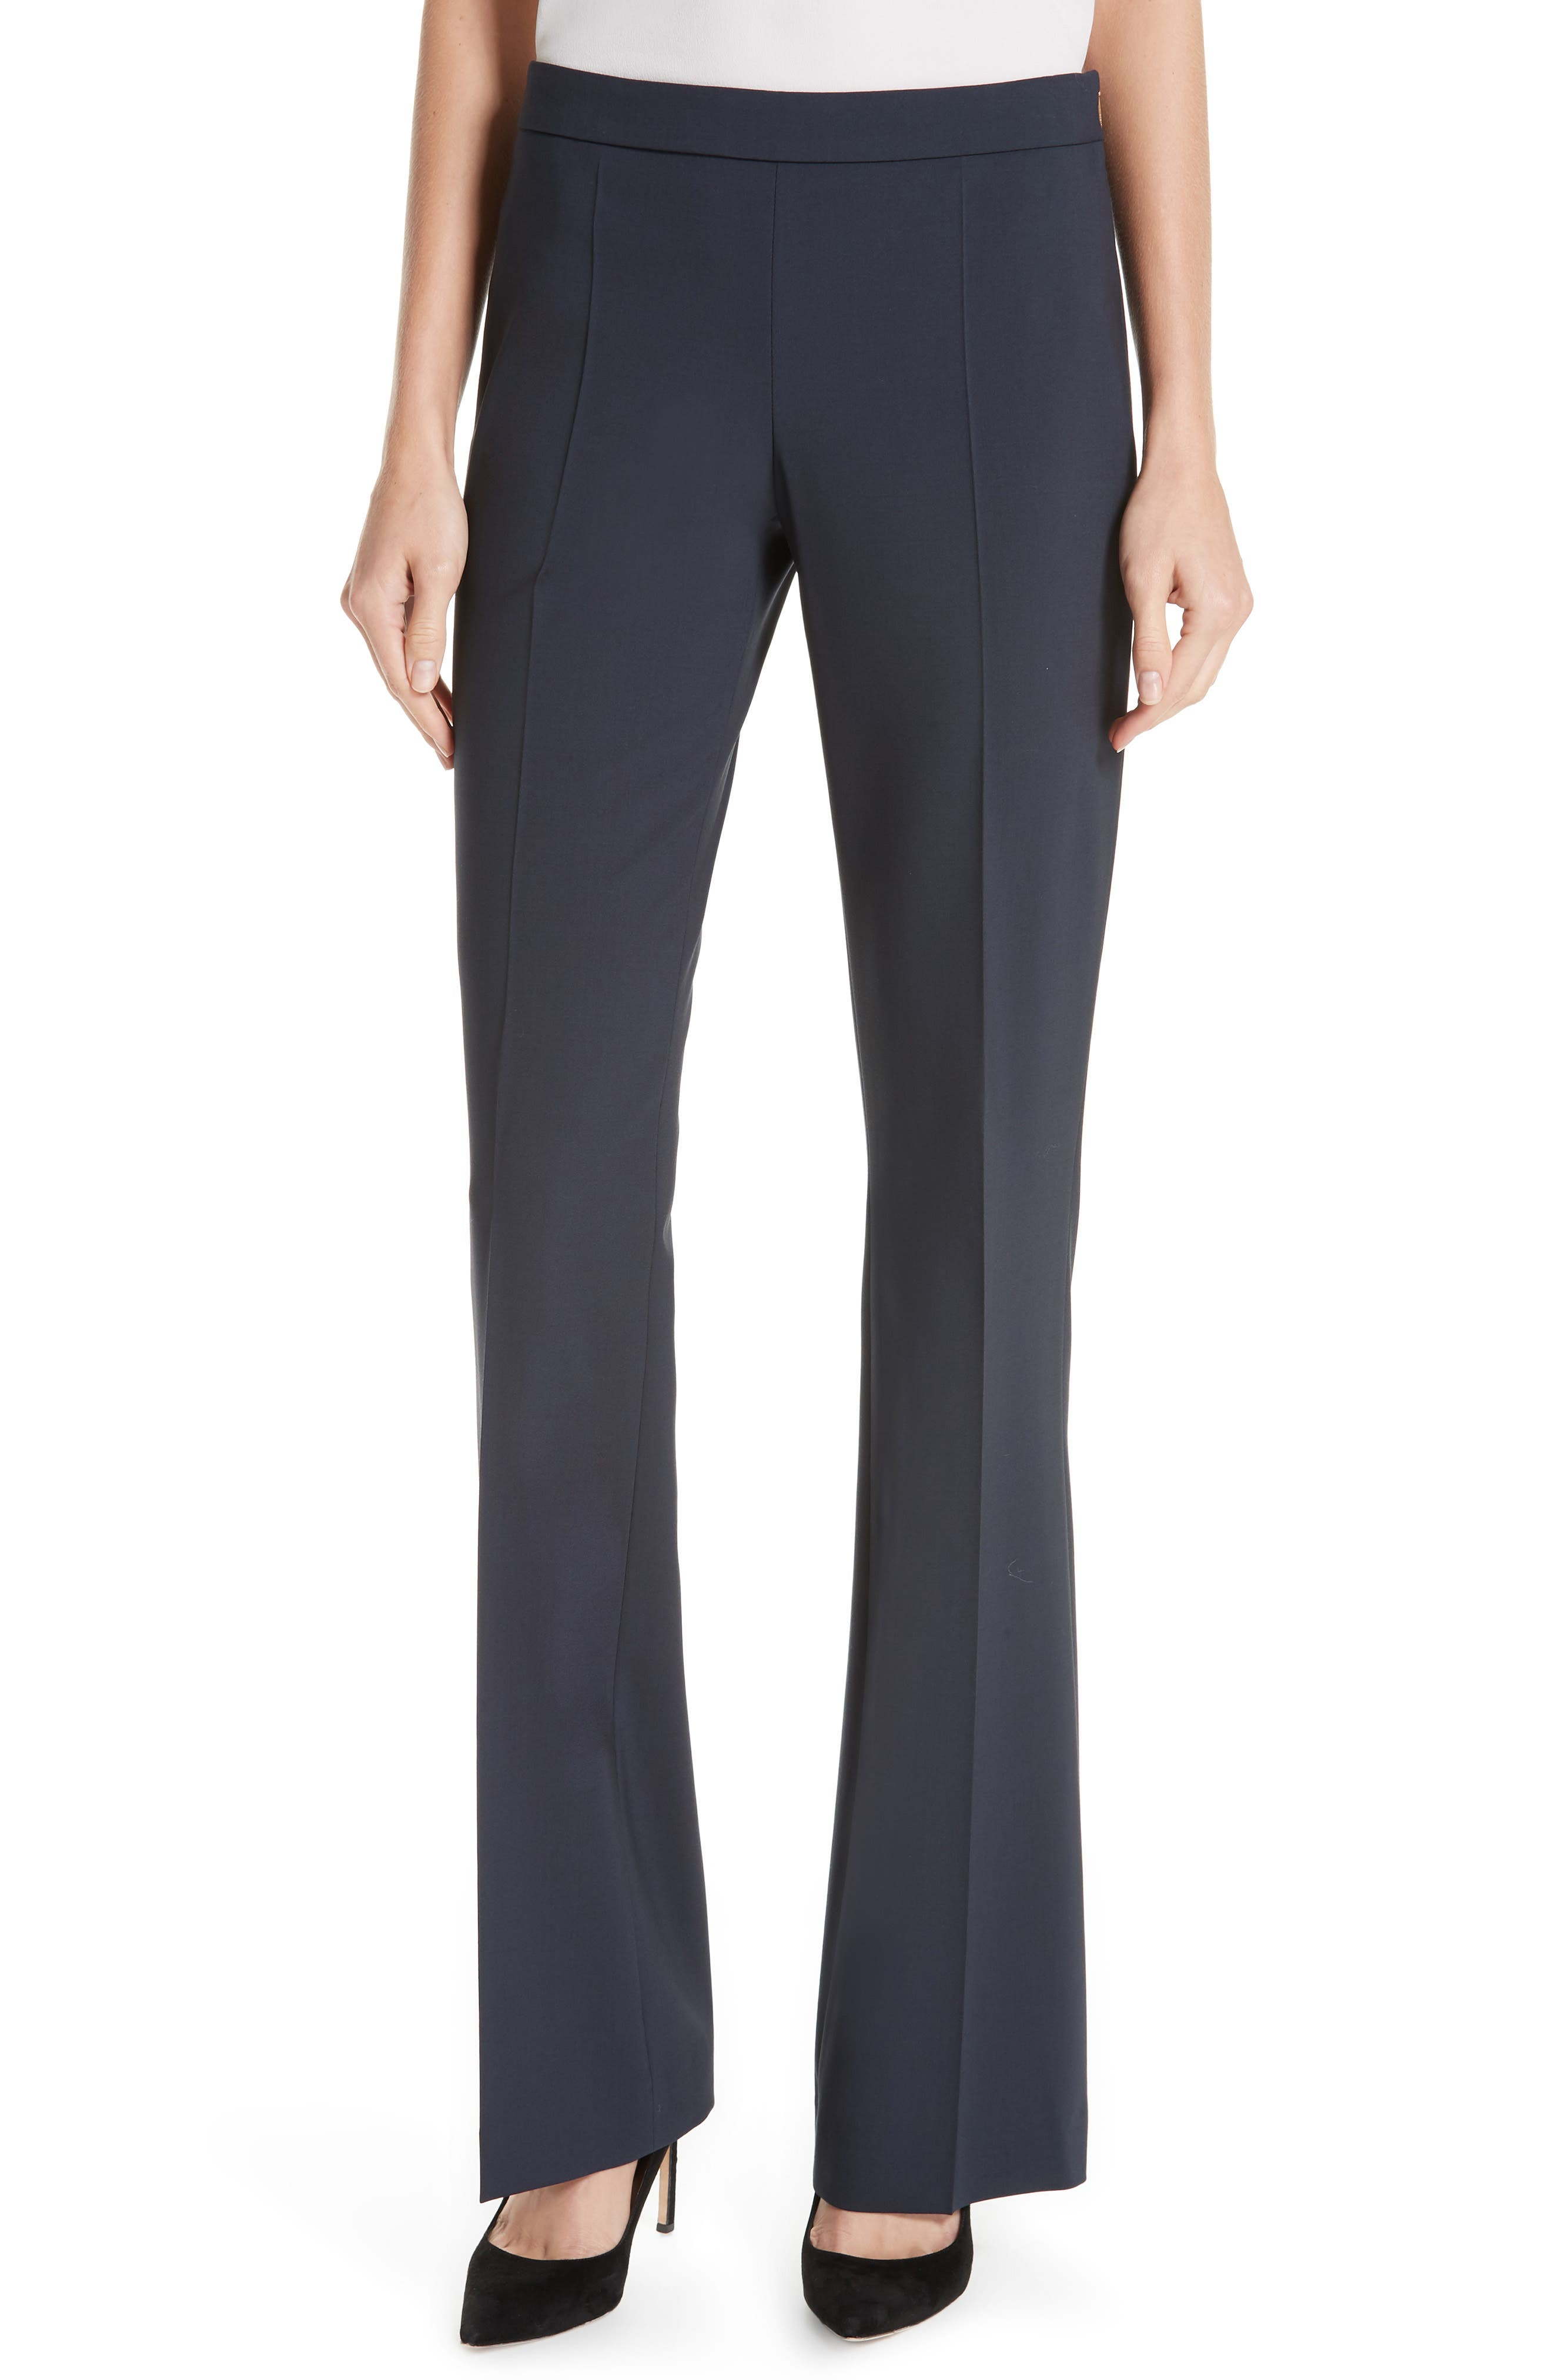 BOSS, Tulea Side Zip Tropical Stretch Wool Trousers, Main thumbnail 1, color, NAVY